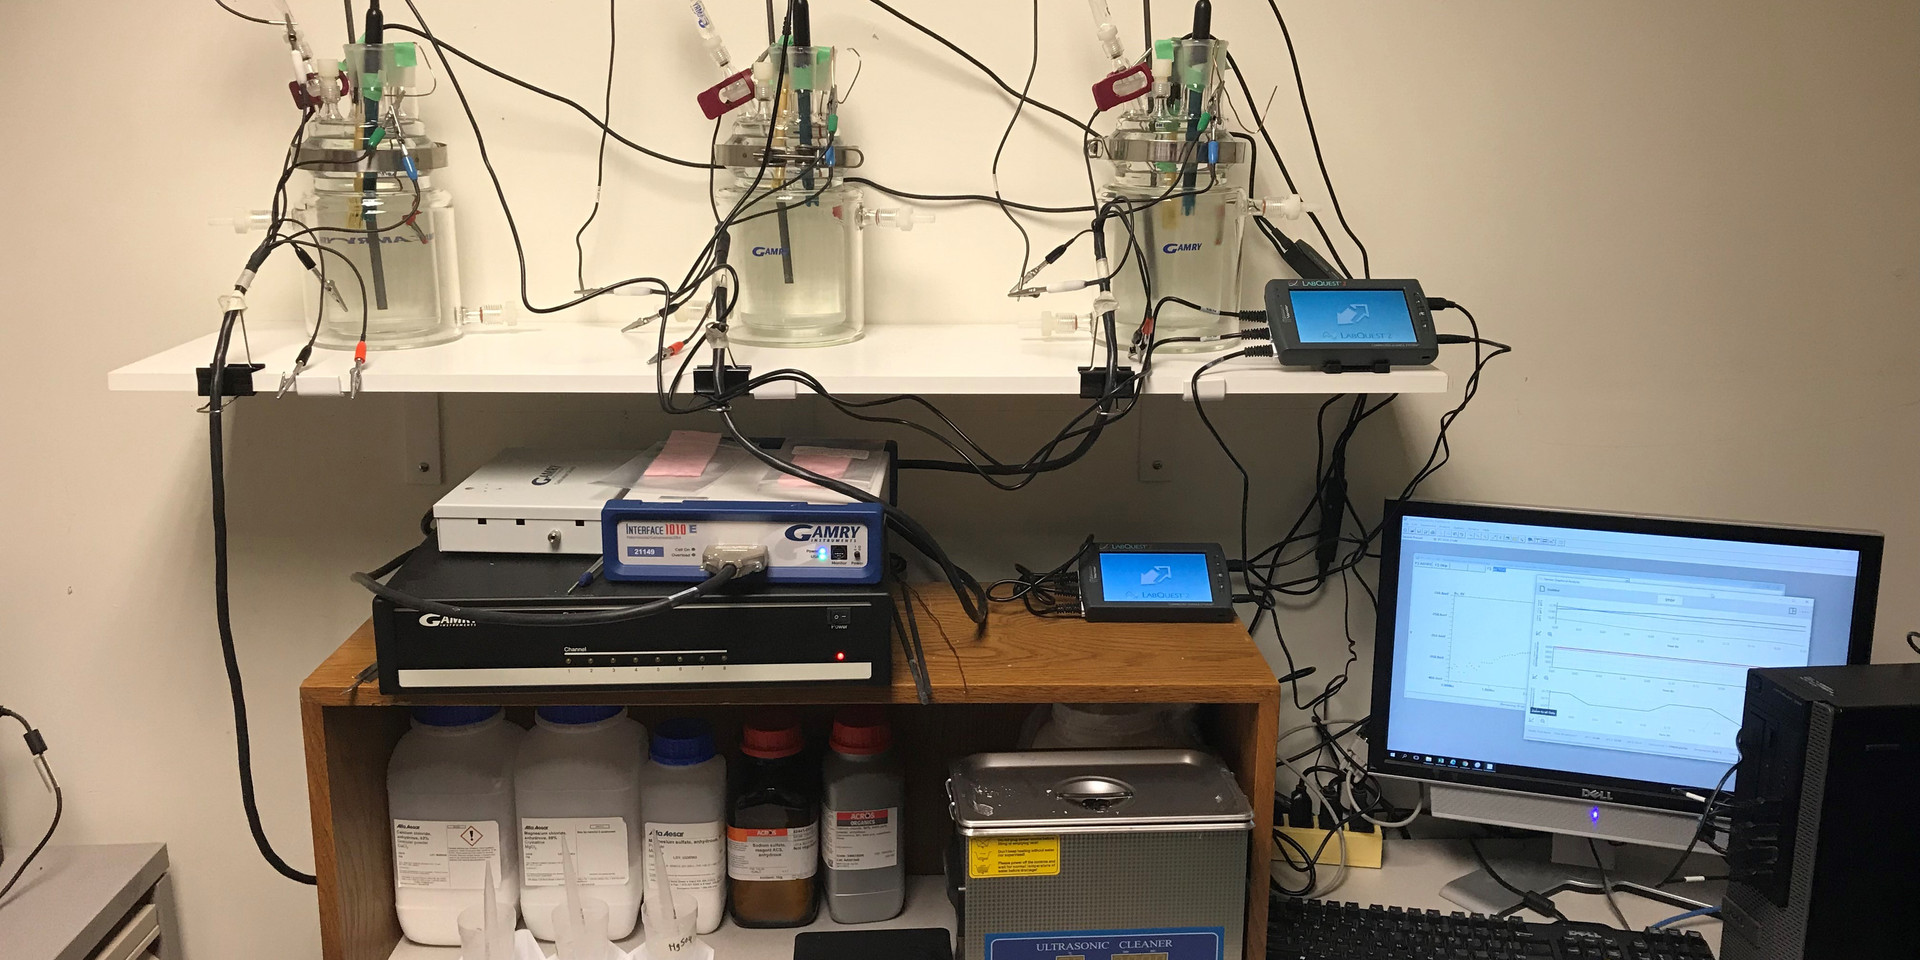 Electrochemical setup for testing the critical chloride threshold of post-tension tendons in expressed grout pore solution and exposed to chlorides+sulfates. Each corrosion cell is supplied additionally with a conductivty, a pH, and a tempertaure sensors to study the evolution of pH and pore solution conductivity and determine the time-variant influence of chlorides and sulfates on electrochemical properties of tendons.